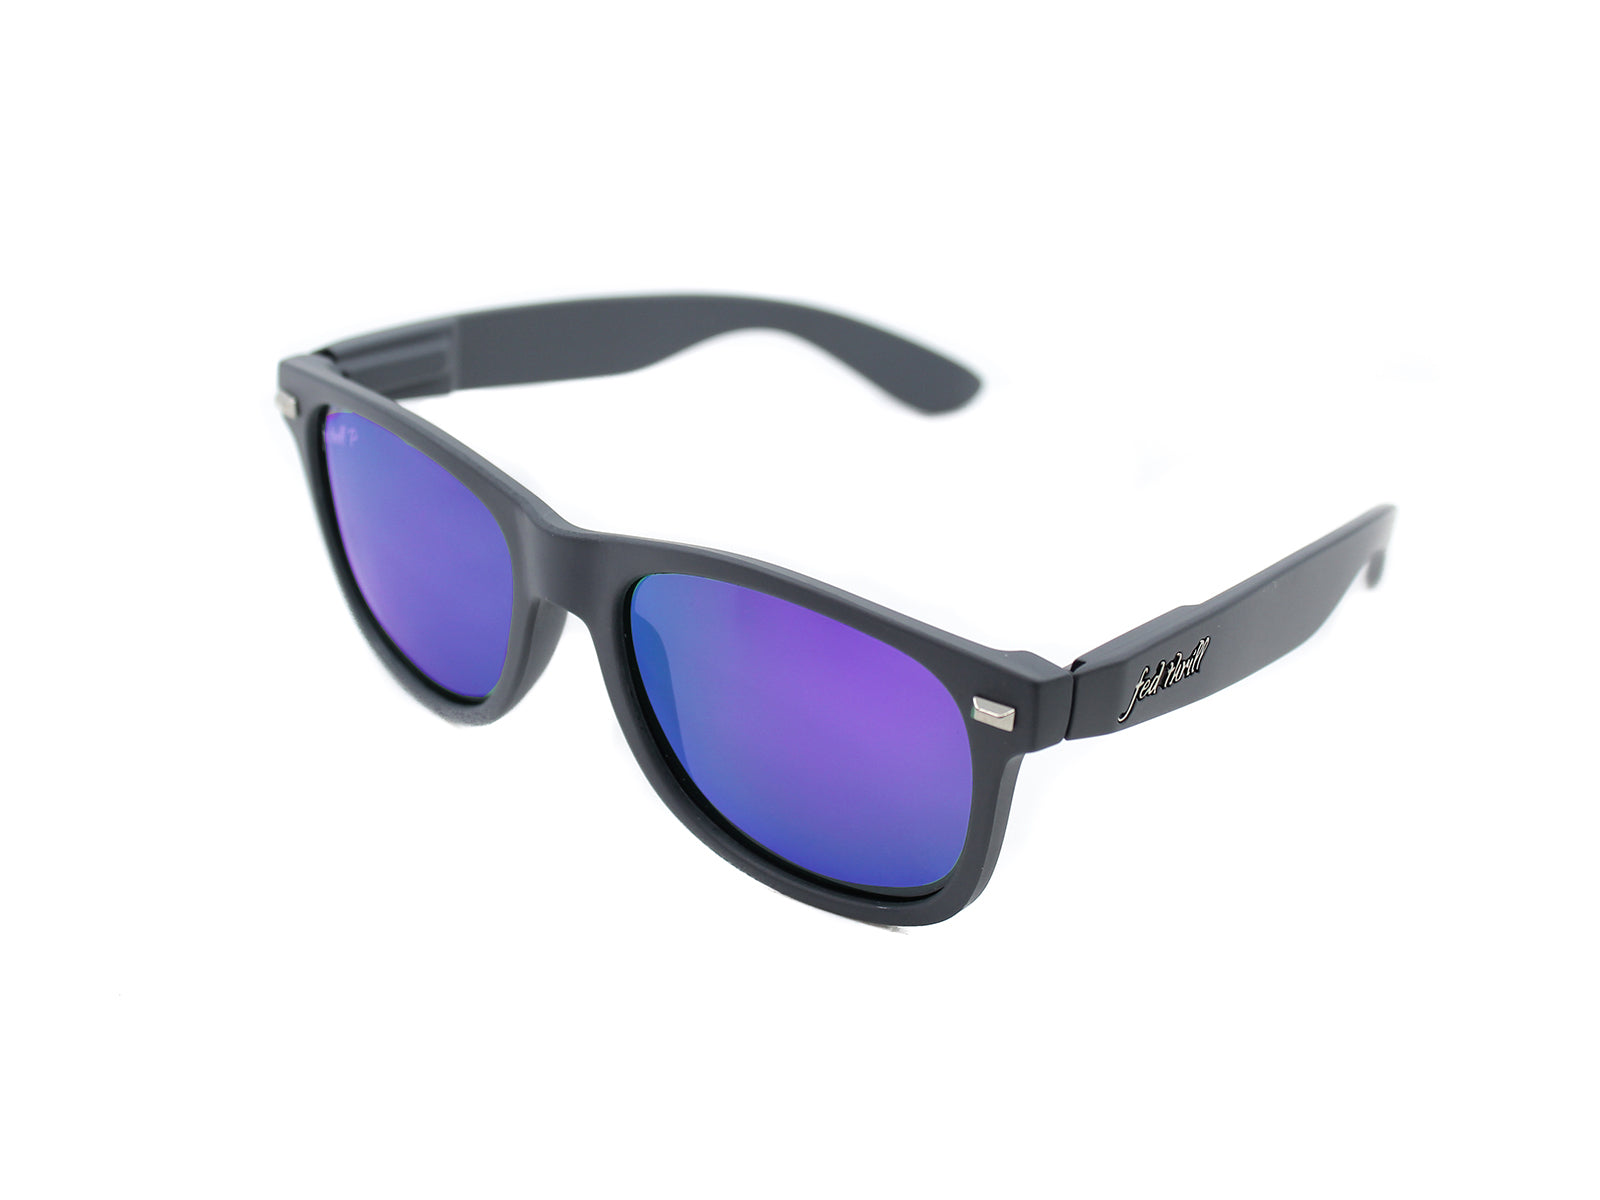 Fultons - Panthers: Matte Gray / Mirrored Purple Polarized